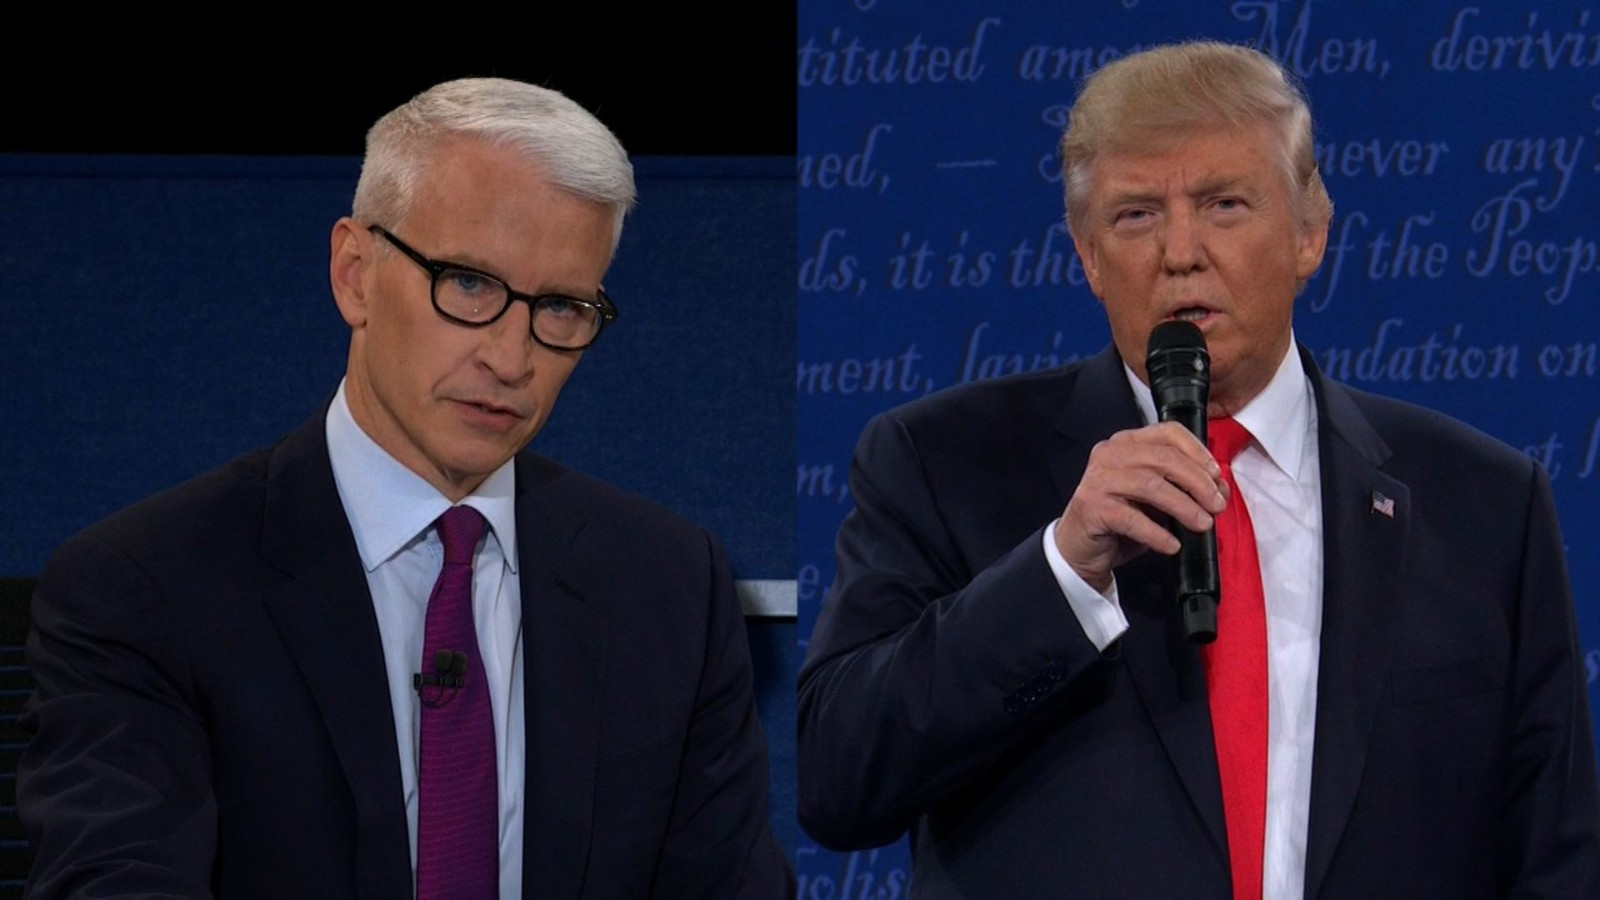 Anderson Cooper Compares Donald Trump To A Turtle 'On Its Back' Dying In The Sun And His Words Go Viral – Check Out The Memes! thumbnail